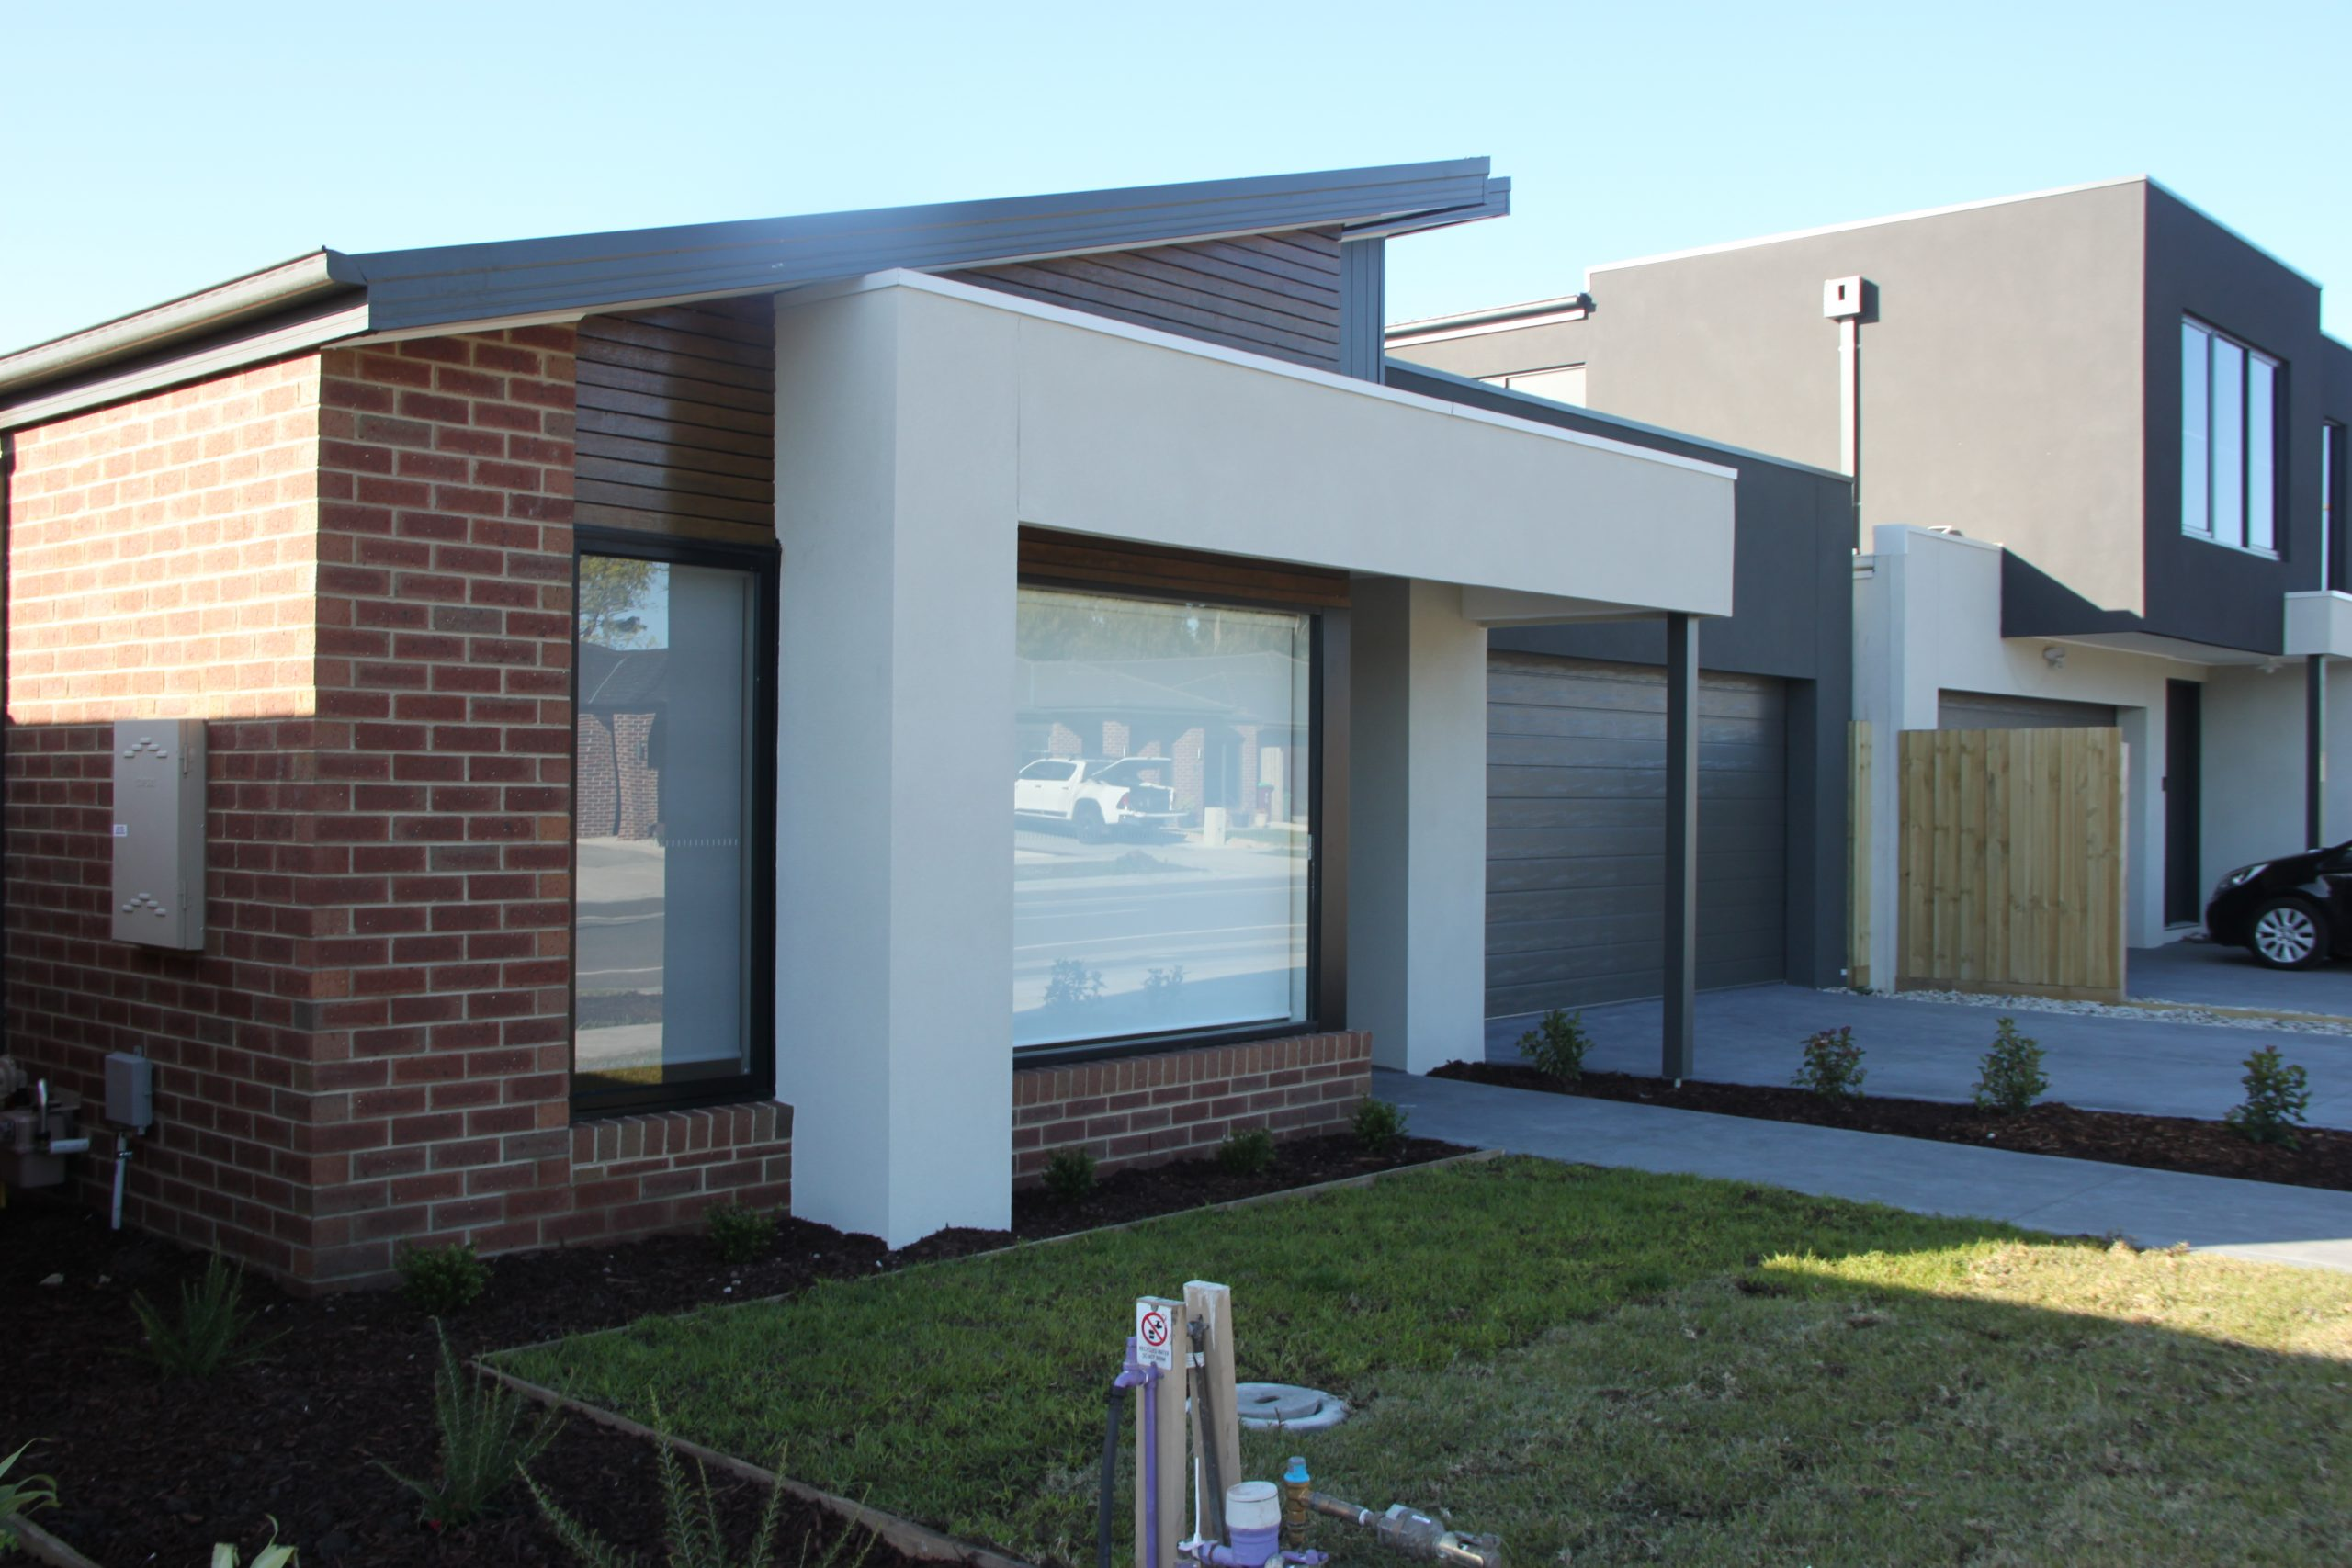 SIL ACC Fiorelli Front yard with grass and exterior of house